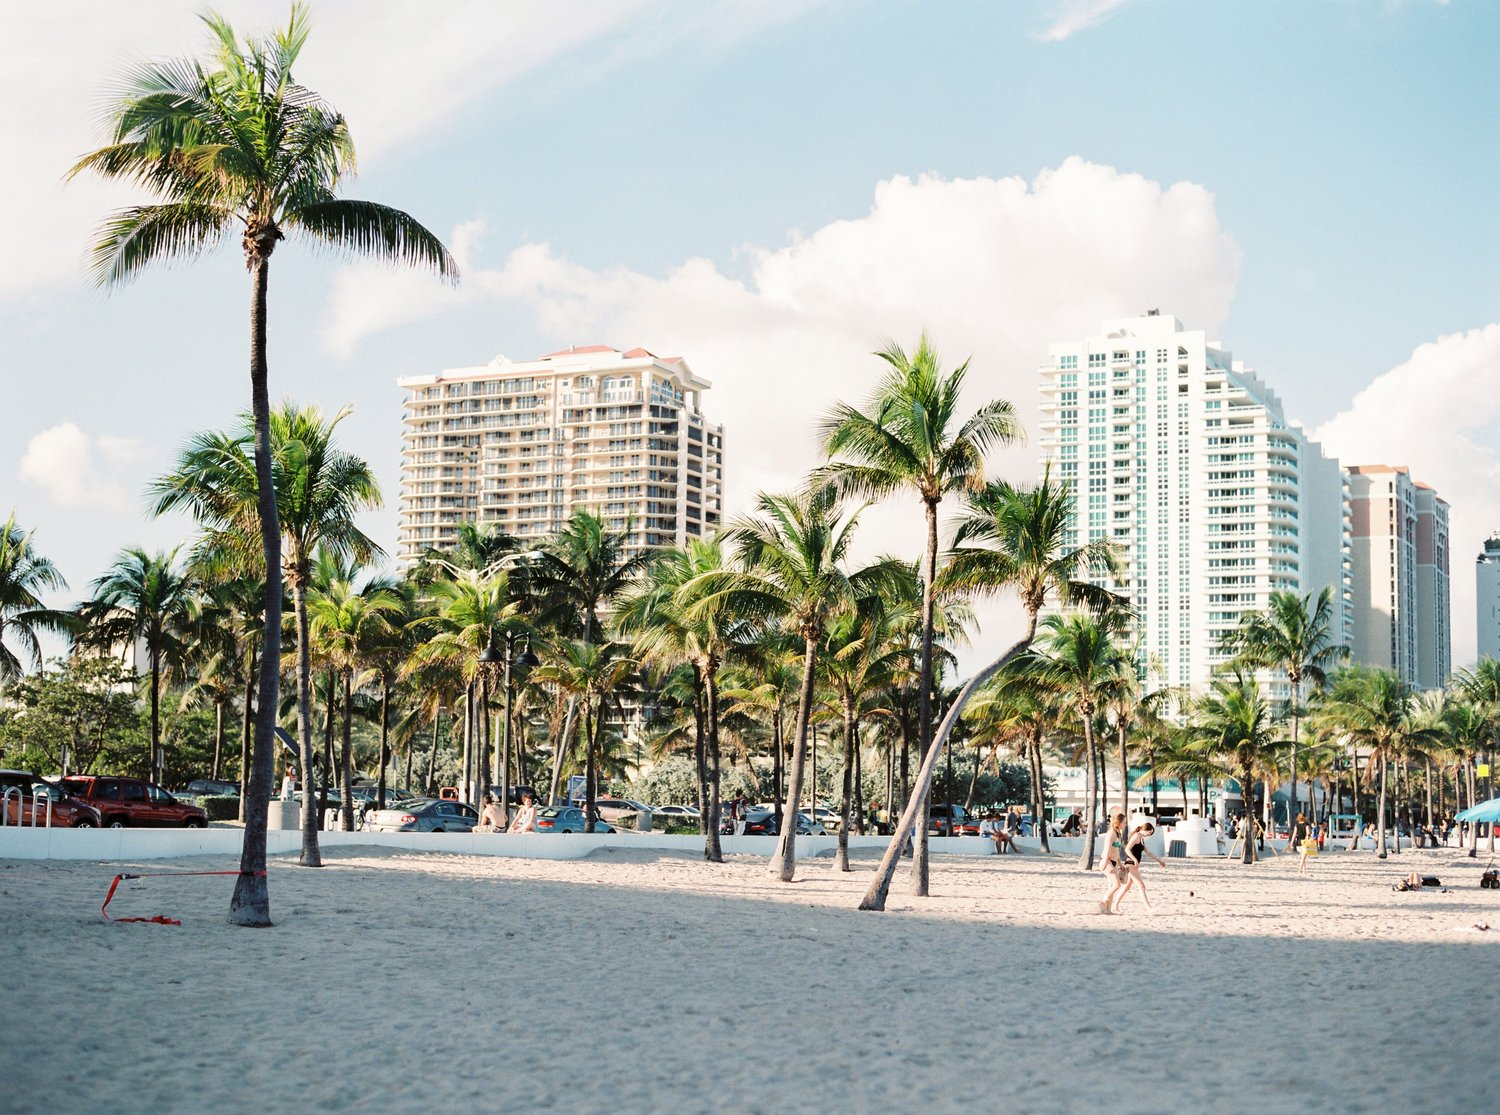 Launching in Miami: What Latin American Startups Need to